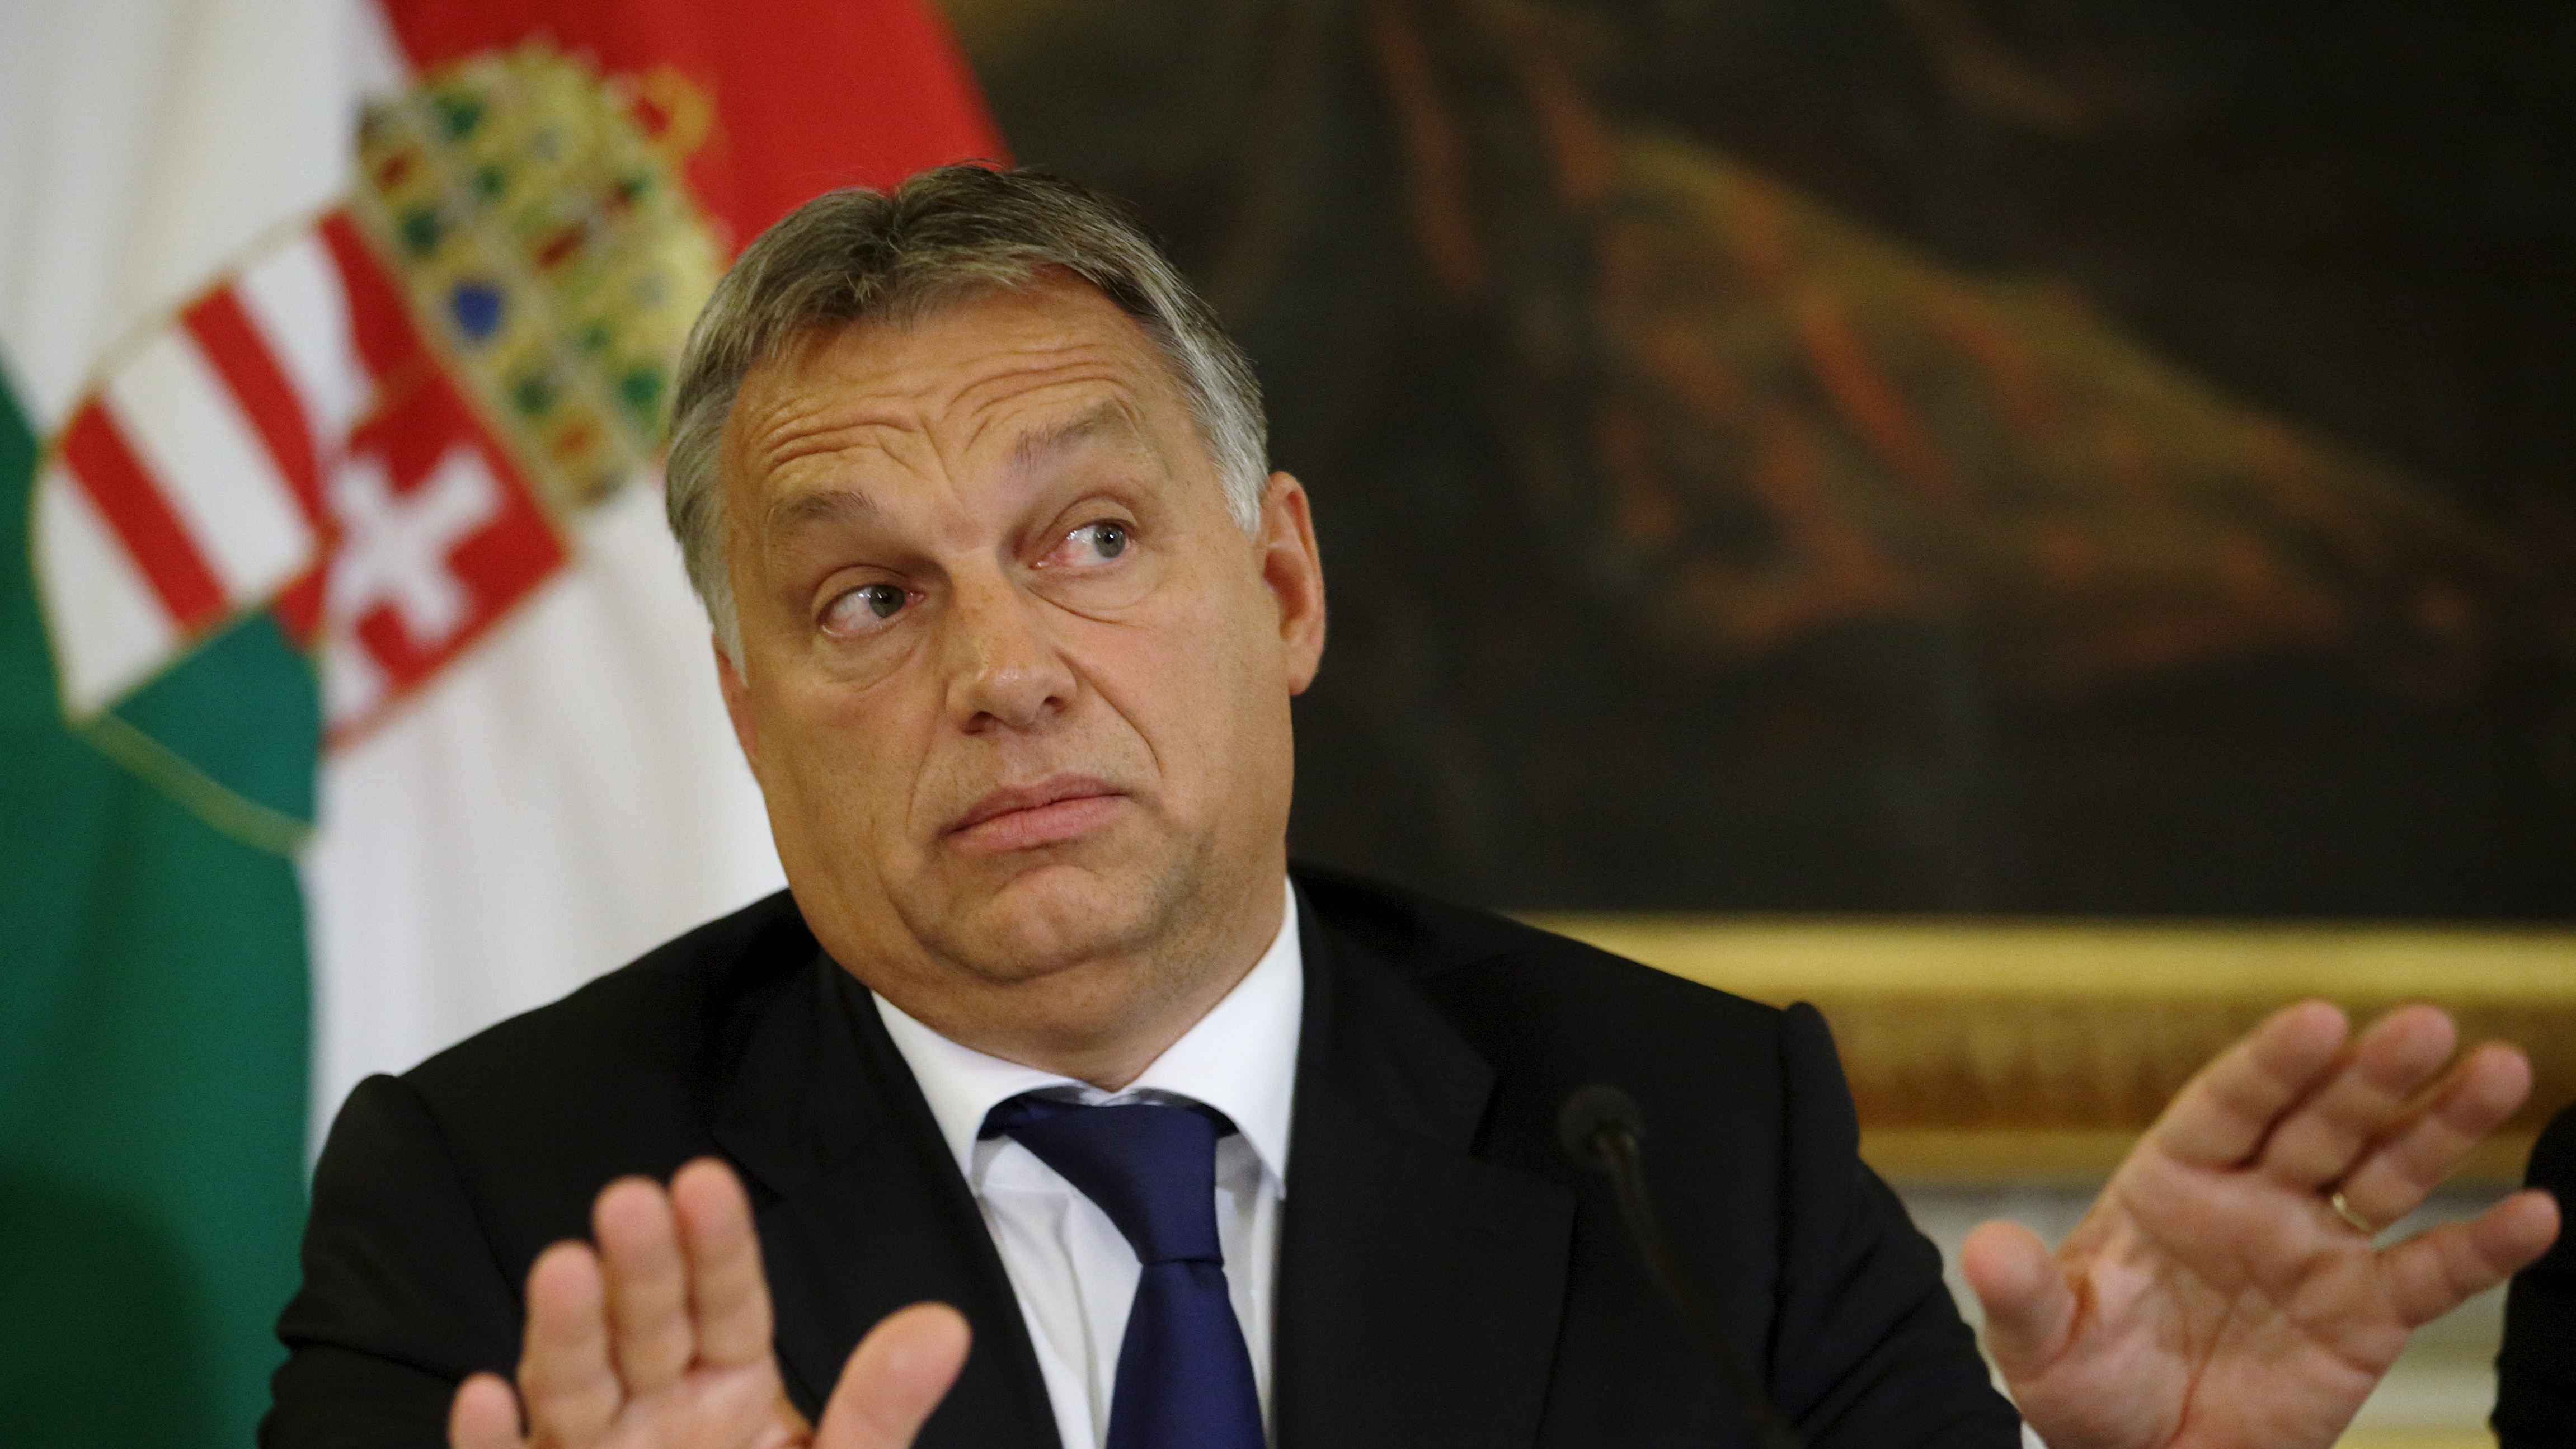 Hungary's Prime Minister Viktor Orban addresses a news conference in Vienna, Austria, September 25, 2015. Hungary will seek support for its efforts to try to block the flood of migrants on its southern border with Croatia, similar to the measures implemented on its border with Serbia, Prime Minister Viktor Orban said in Vienna on Frida